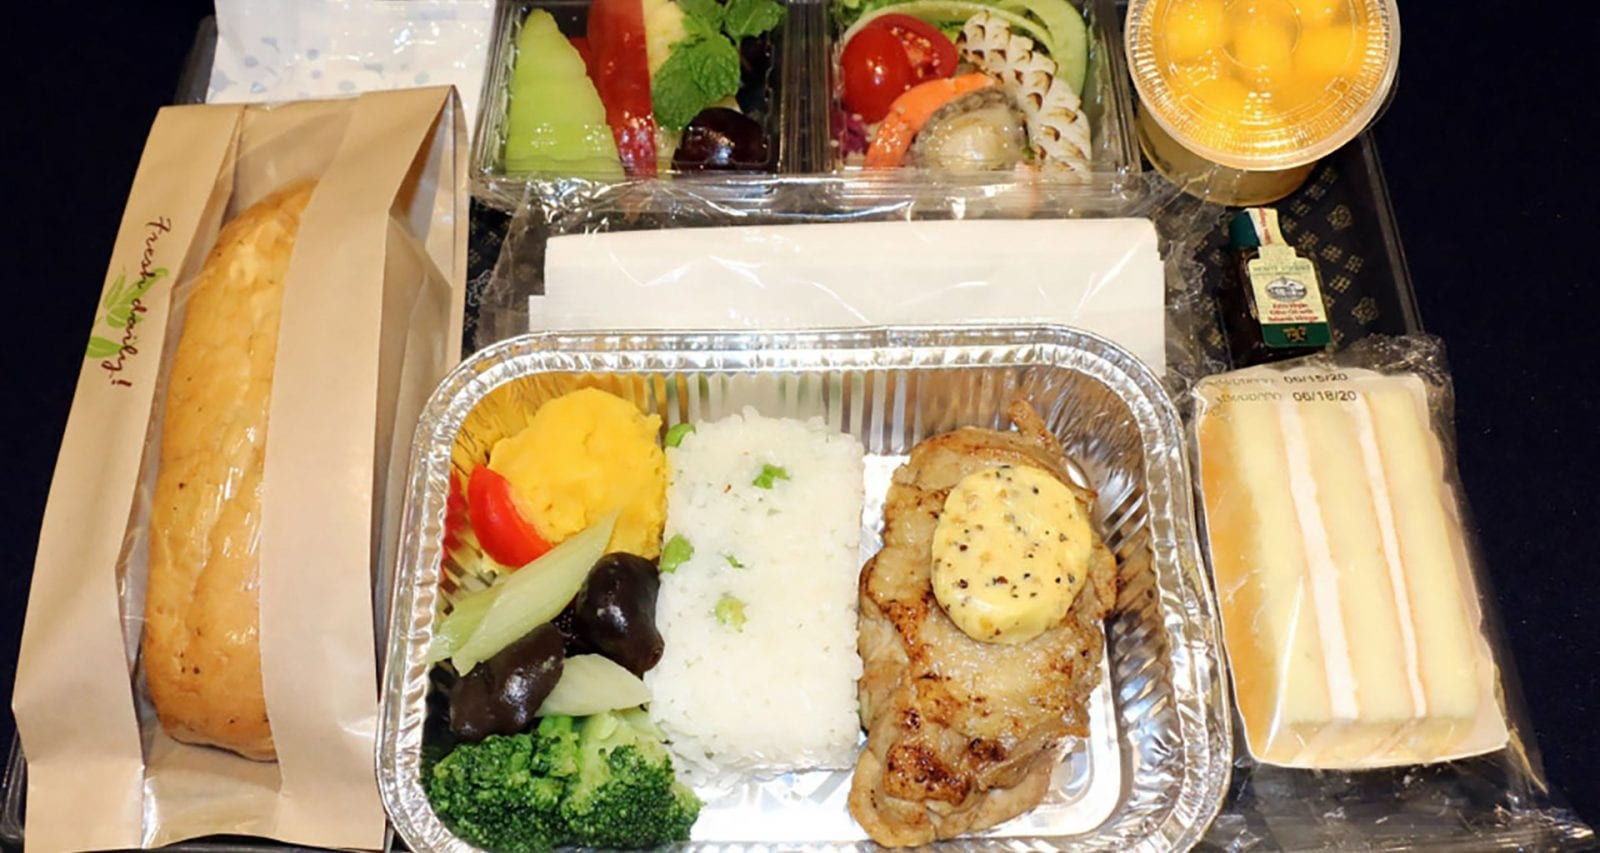 china airlines economy class meal during coronavirus